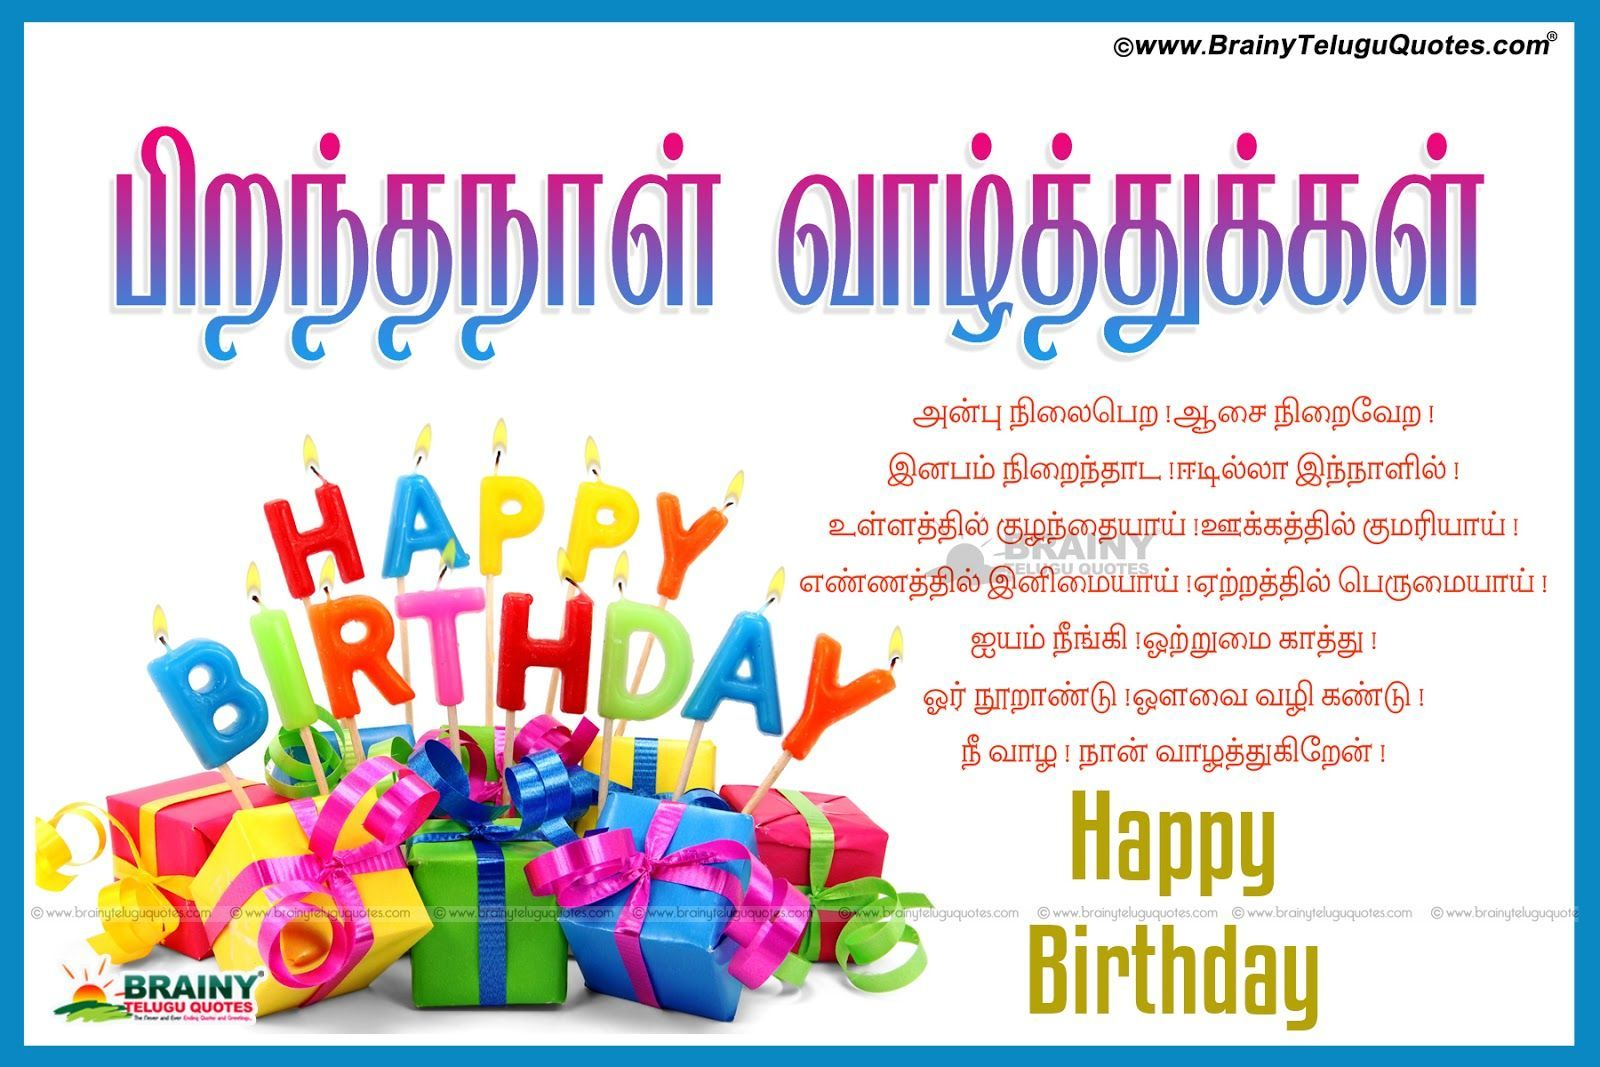 2018 Happy Birthday Images In Tamil Quotes On 2018 Happy Birthday